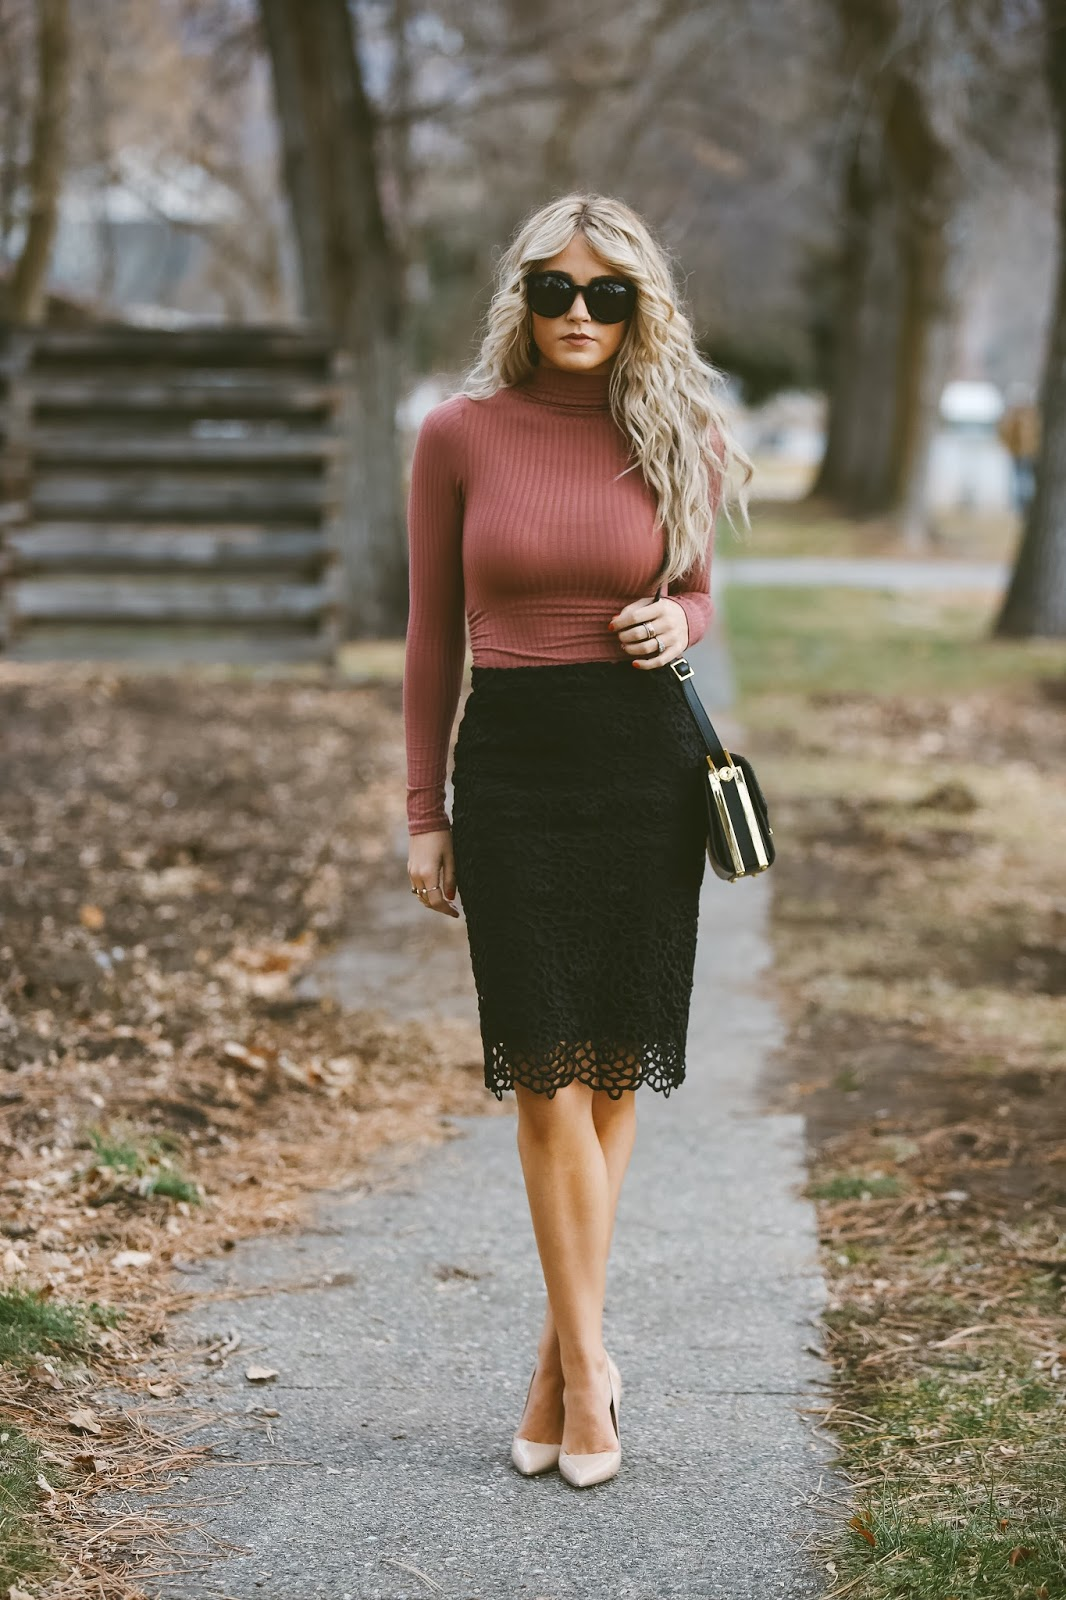 Cara Loren wears this tight fitting ribbed turtle neck top with a black lace midi skirt; a simple and stylish way to wear the trend. Wear this look with tights and a cropped jacket on colder days for an easy every day style. Top: Windsor, Skirt: Bloomingdales.